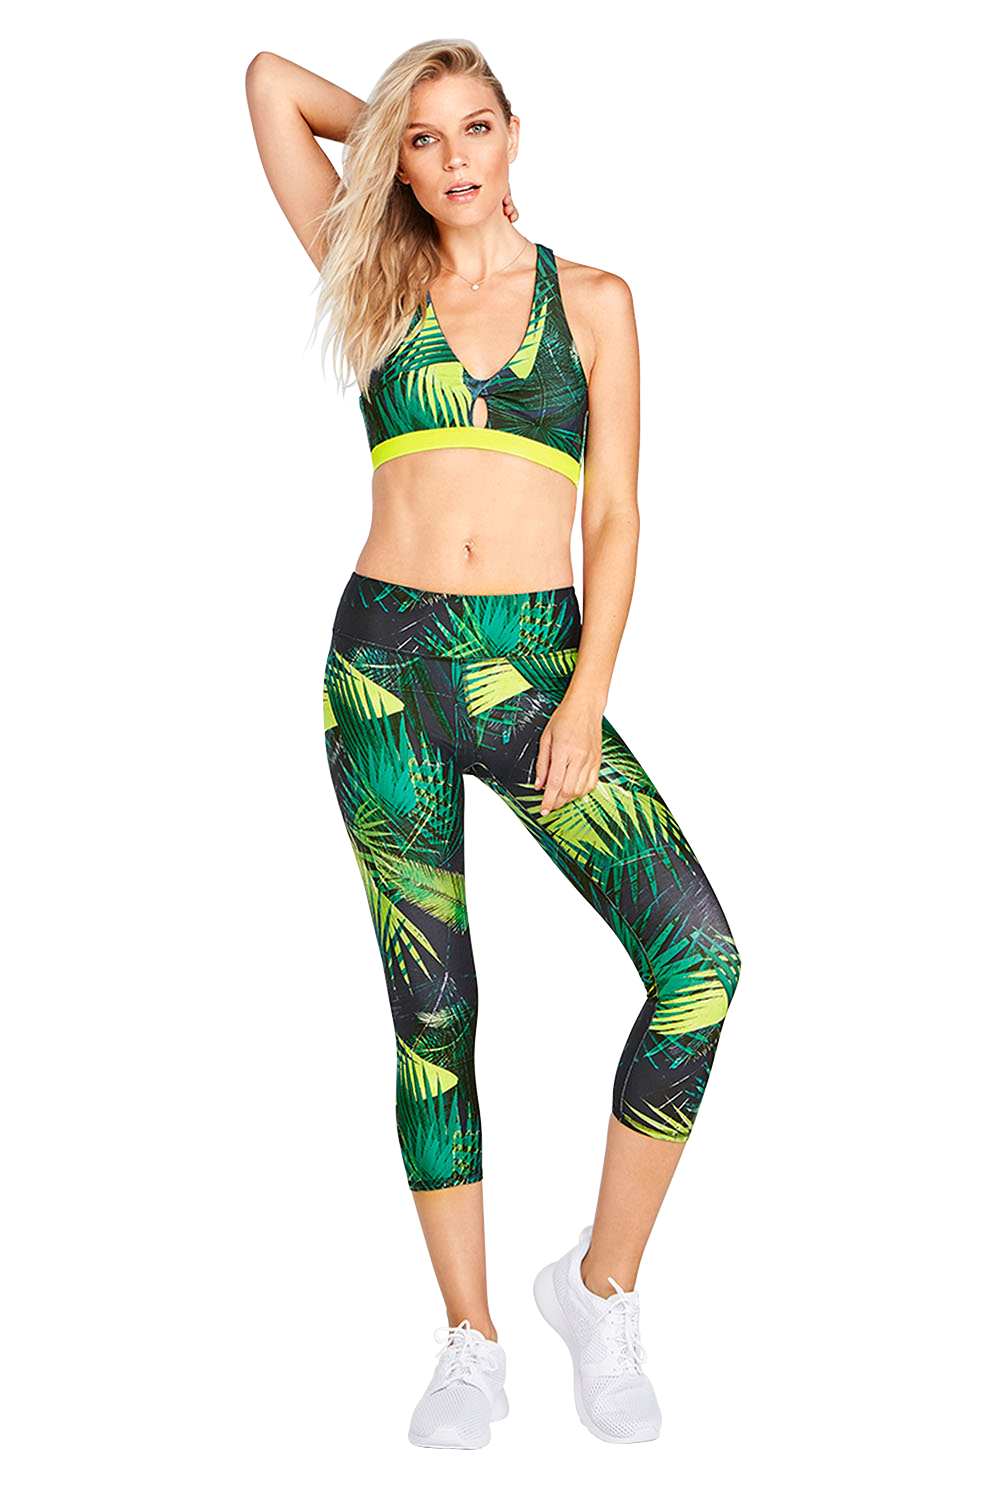 0a6ae3e766edc Built-in ventilation never looked better with our mesh-strap tank and  cutout bra. Pair it with our palm print leggings to fight sweat on contact.